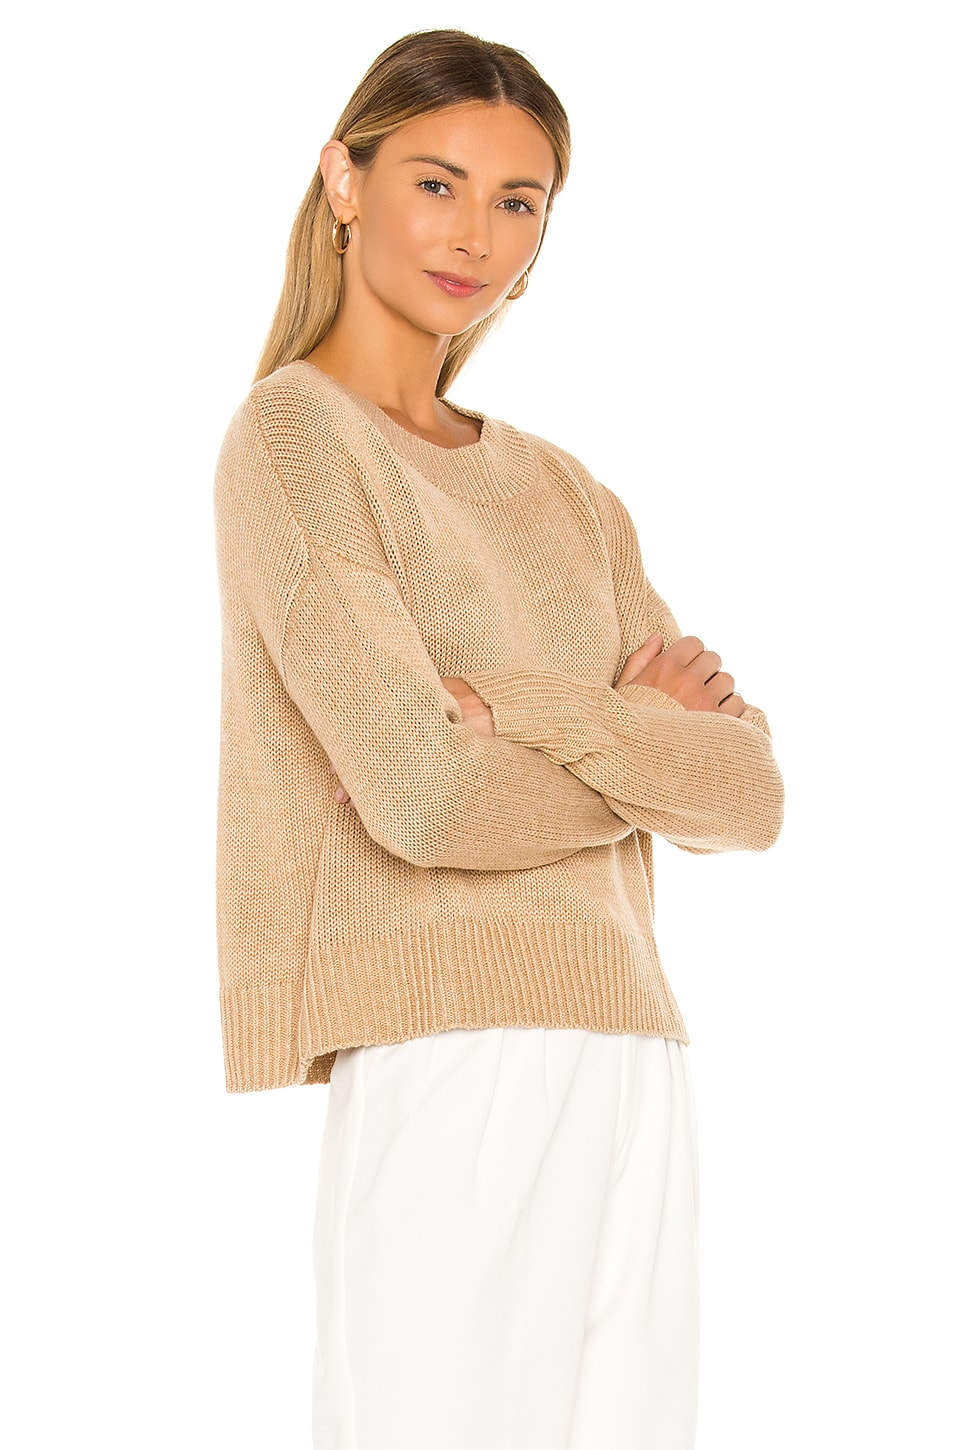 Lovers + Friends Keke Sweater in Natural